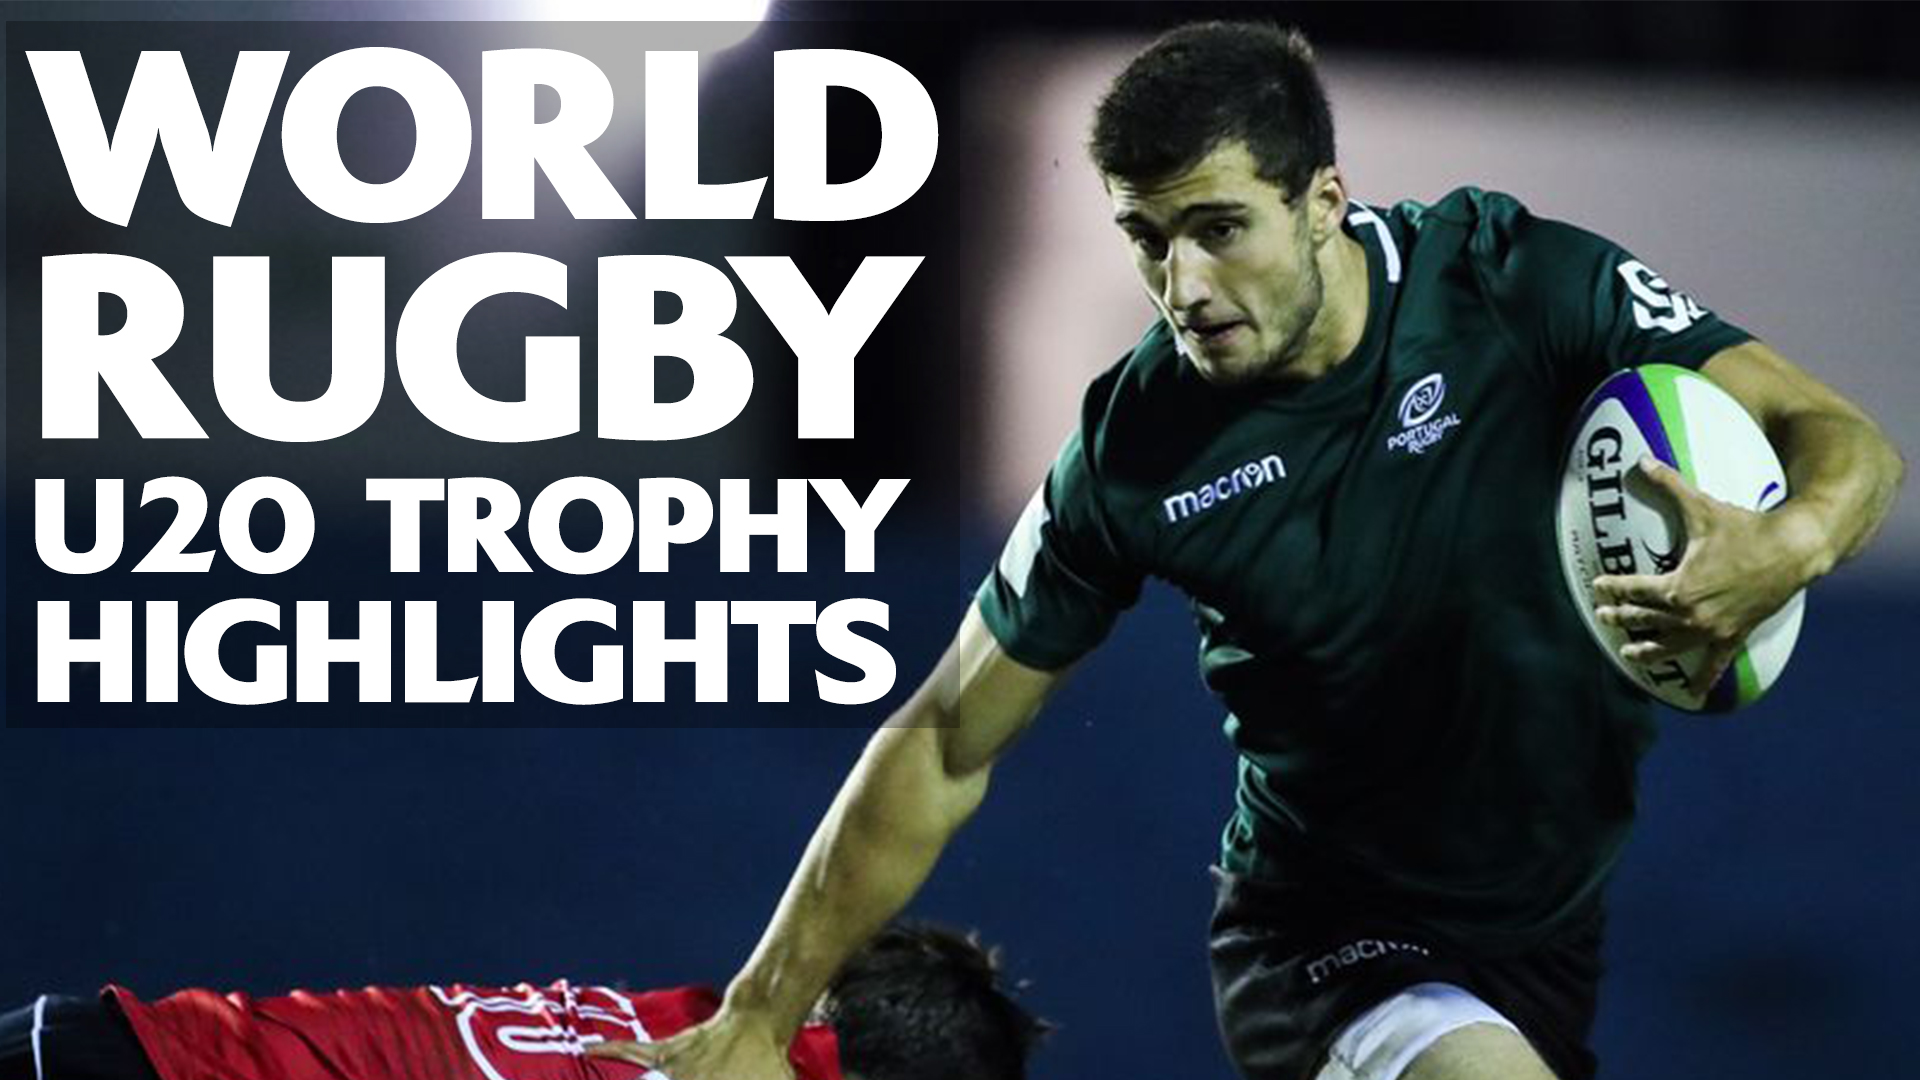 World Rugby U20 Trophy   Matchday One Highlights